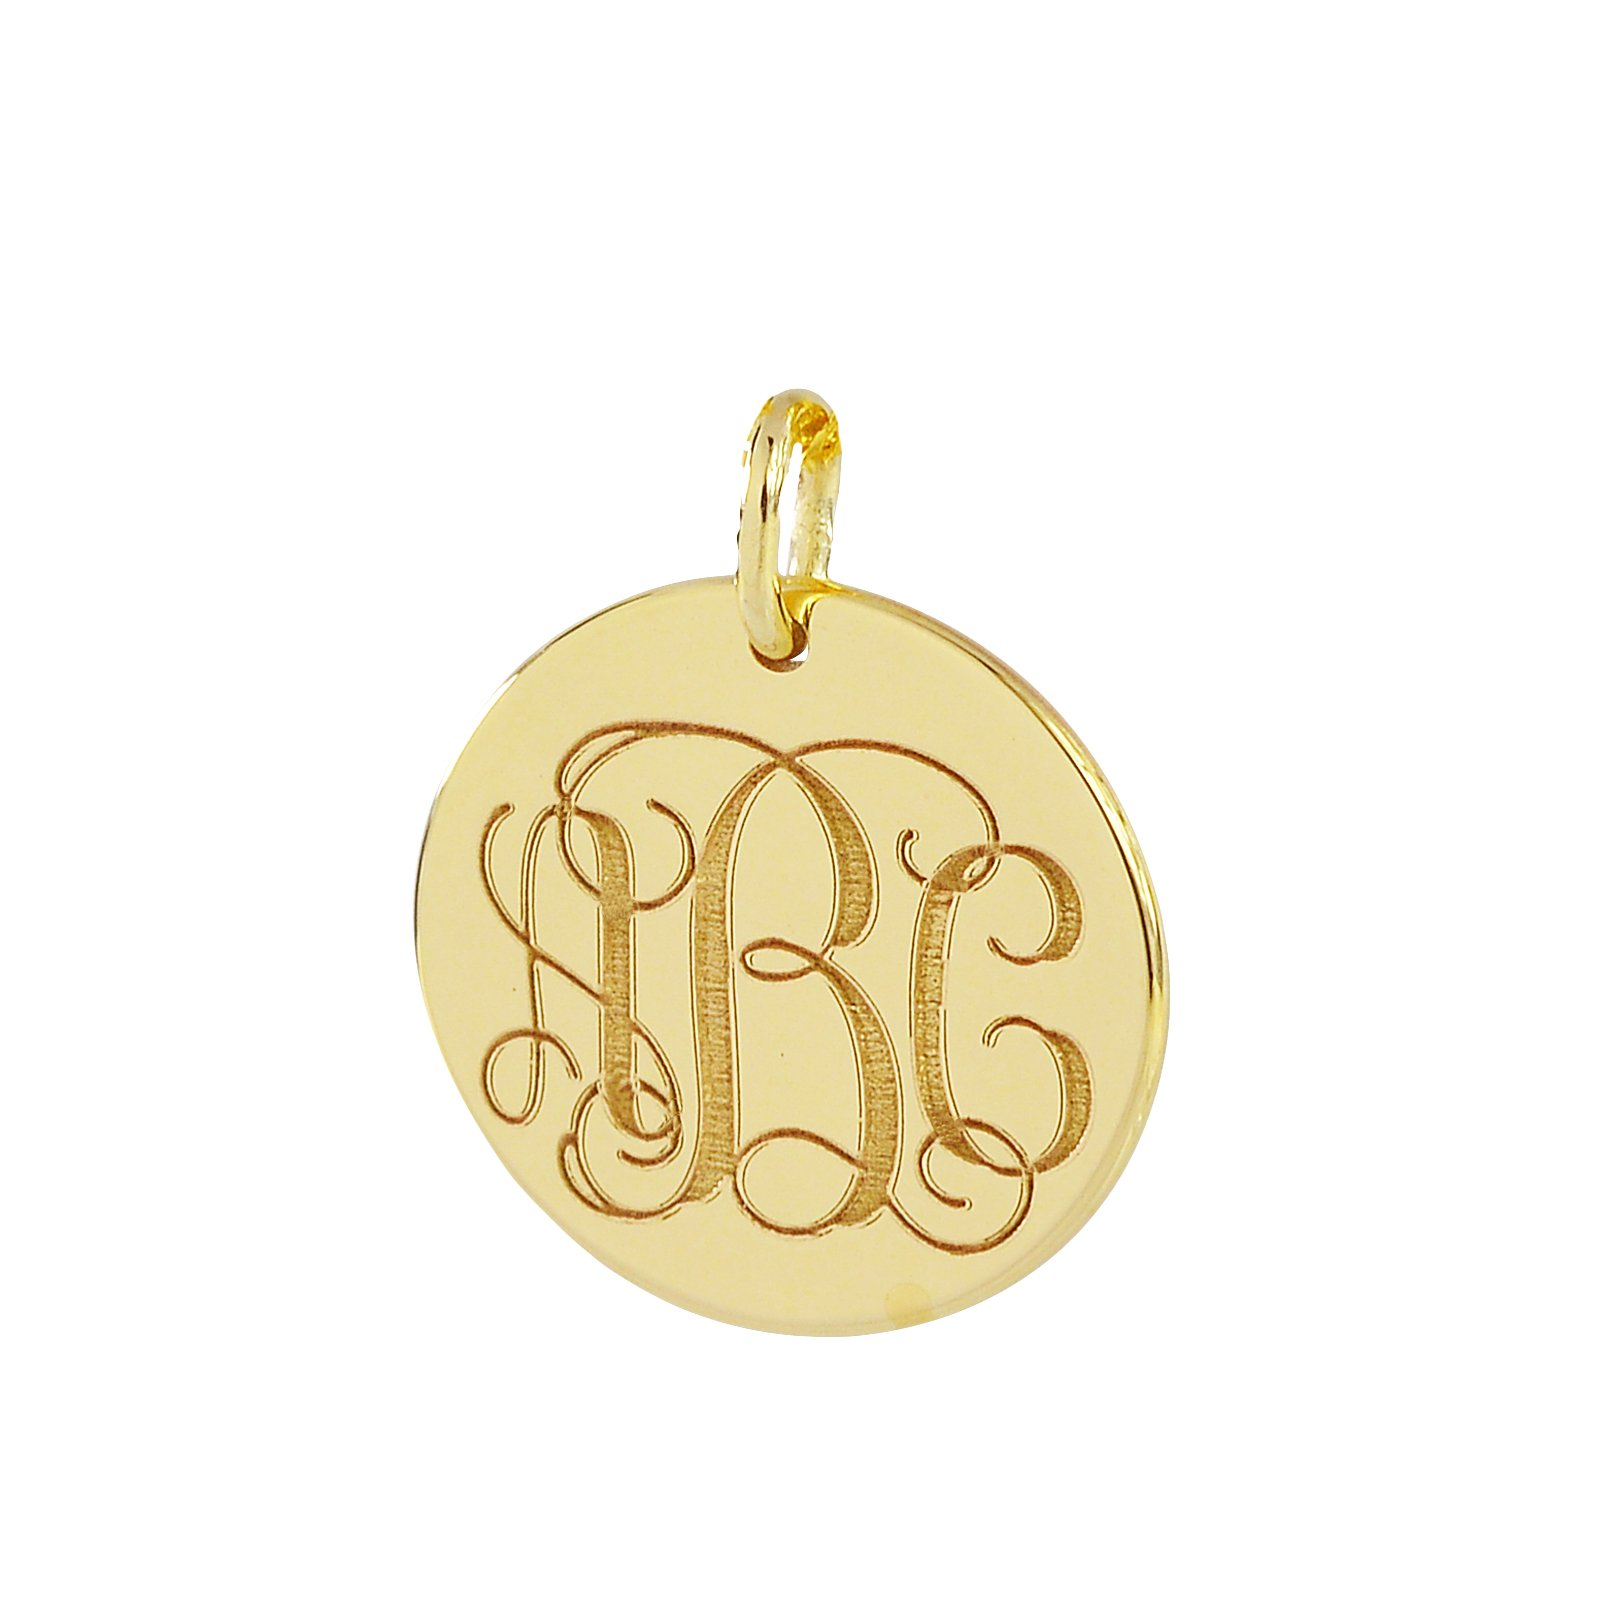 3 Initials Monogram Charm Pendant Solid 14K Gold 1/2 Inch Dainty Small Round Disc Deep Laser Engraving GC06 (0) by Soul Jewelry